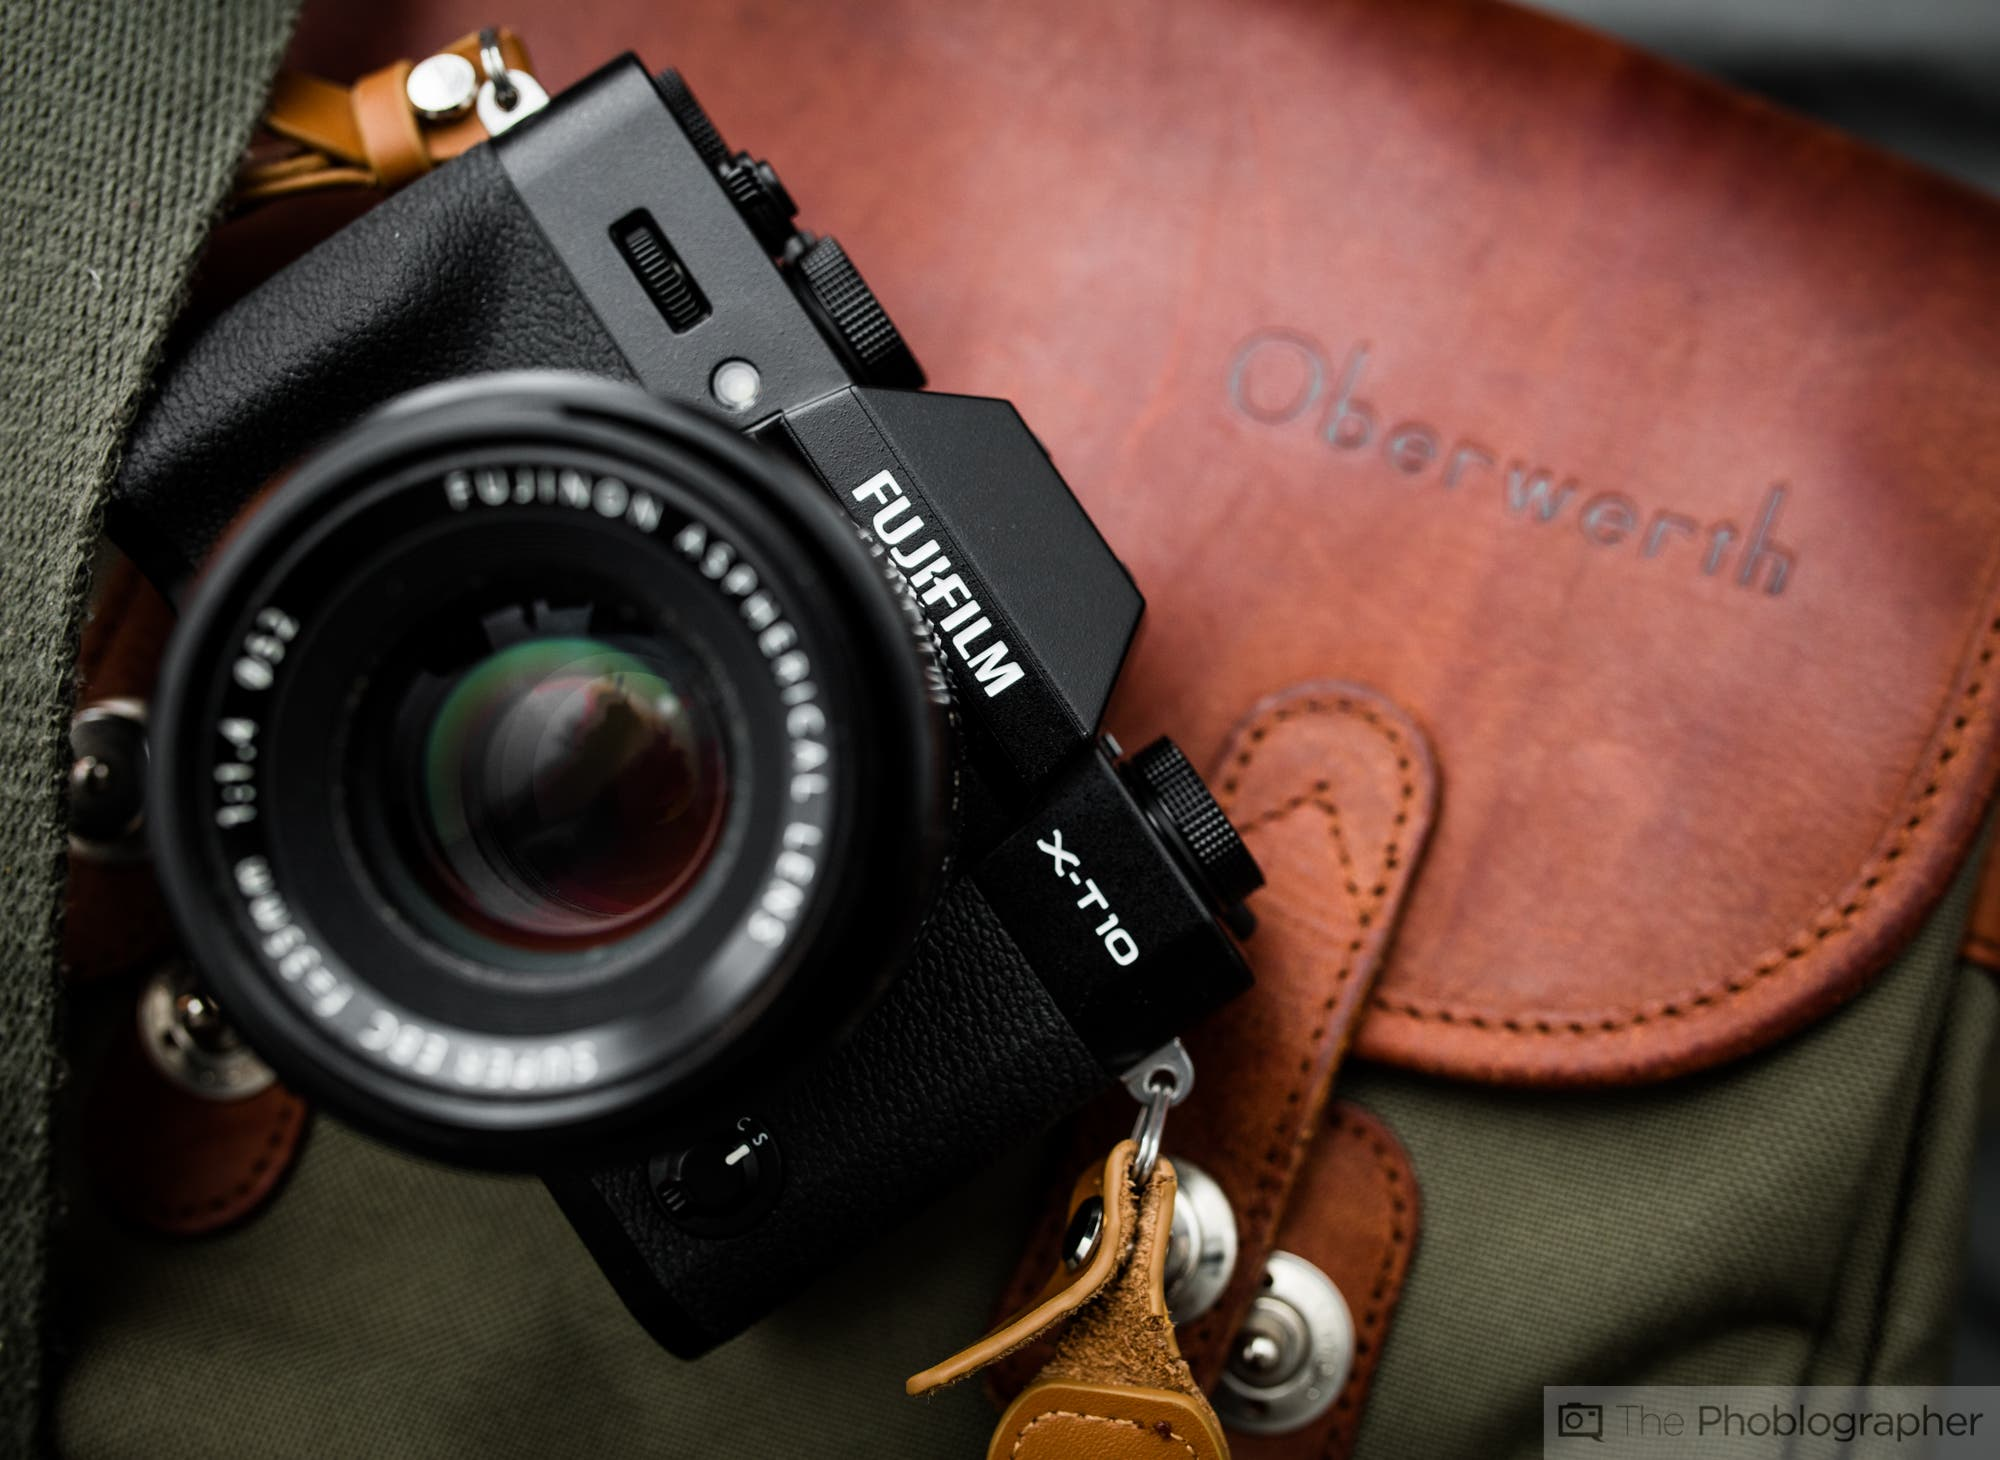 Ready to Upgrade from The Entry/Basic? Here Are Our Top Mid-level Camera Picks